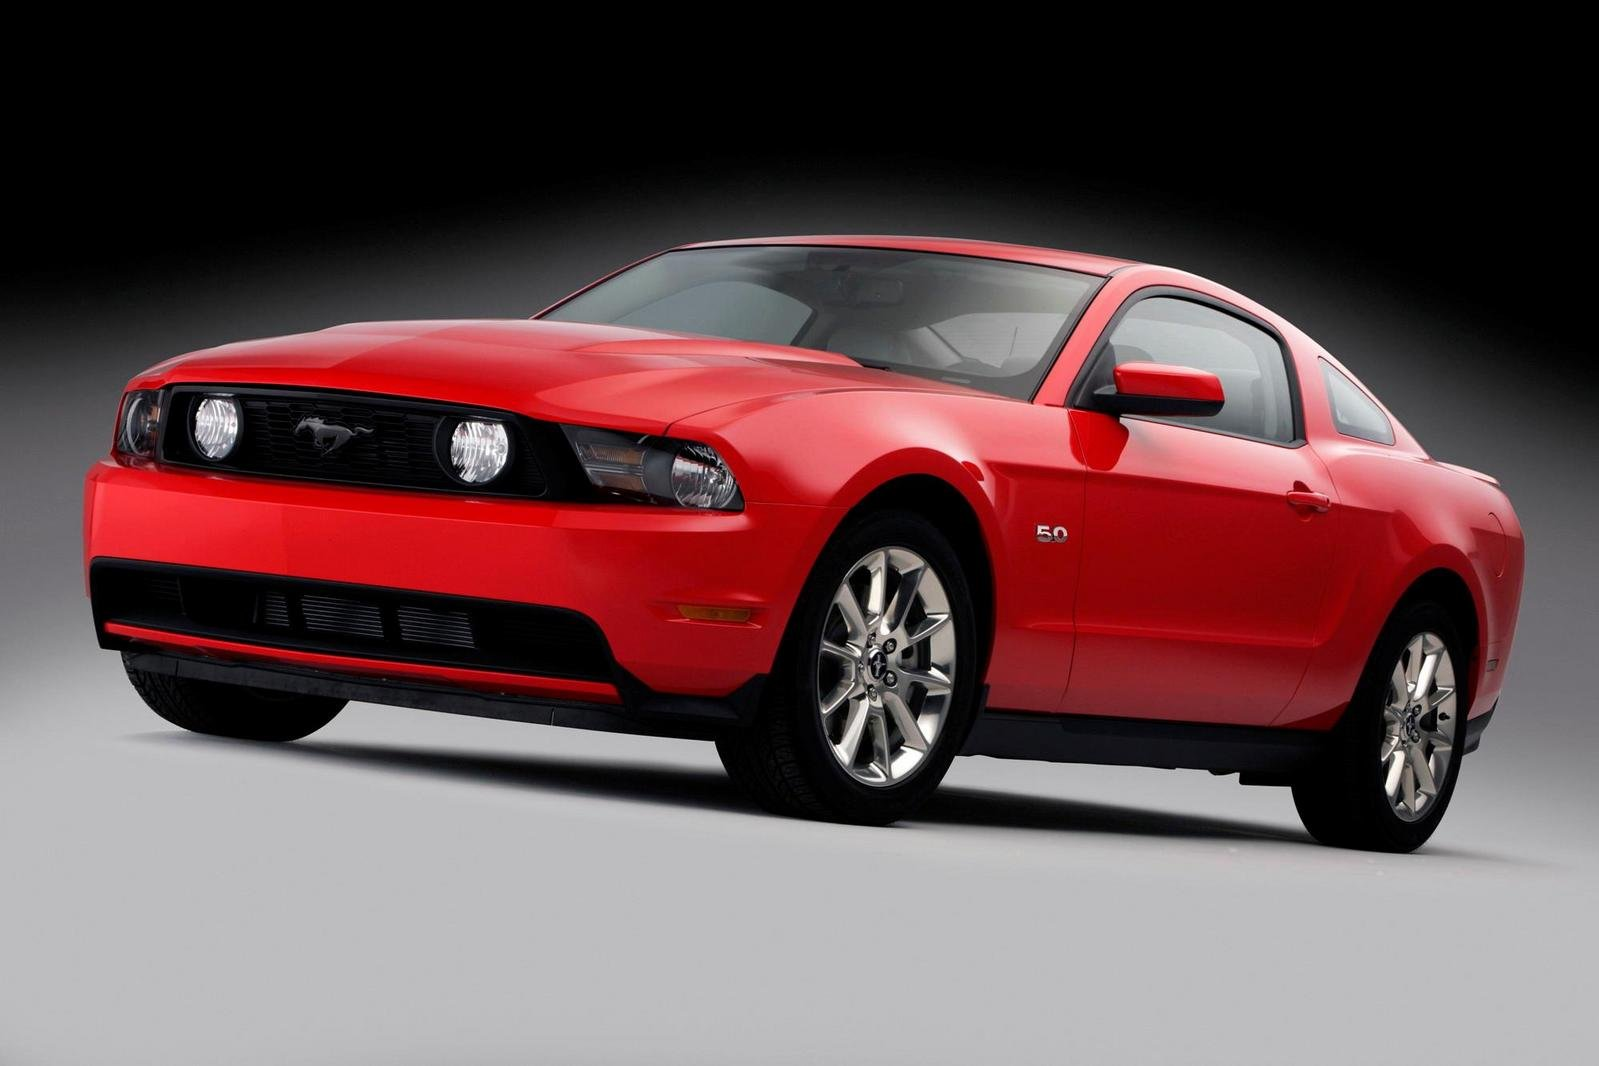 2011 ford mustang gt 5 0 review top speed. Black Bedroom Furniture Sets. Home Design Ideas